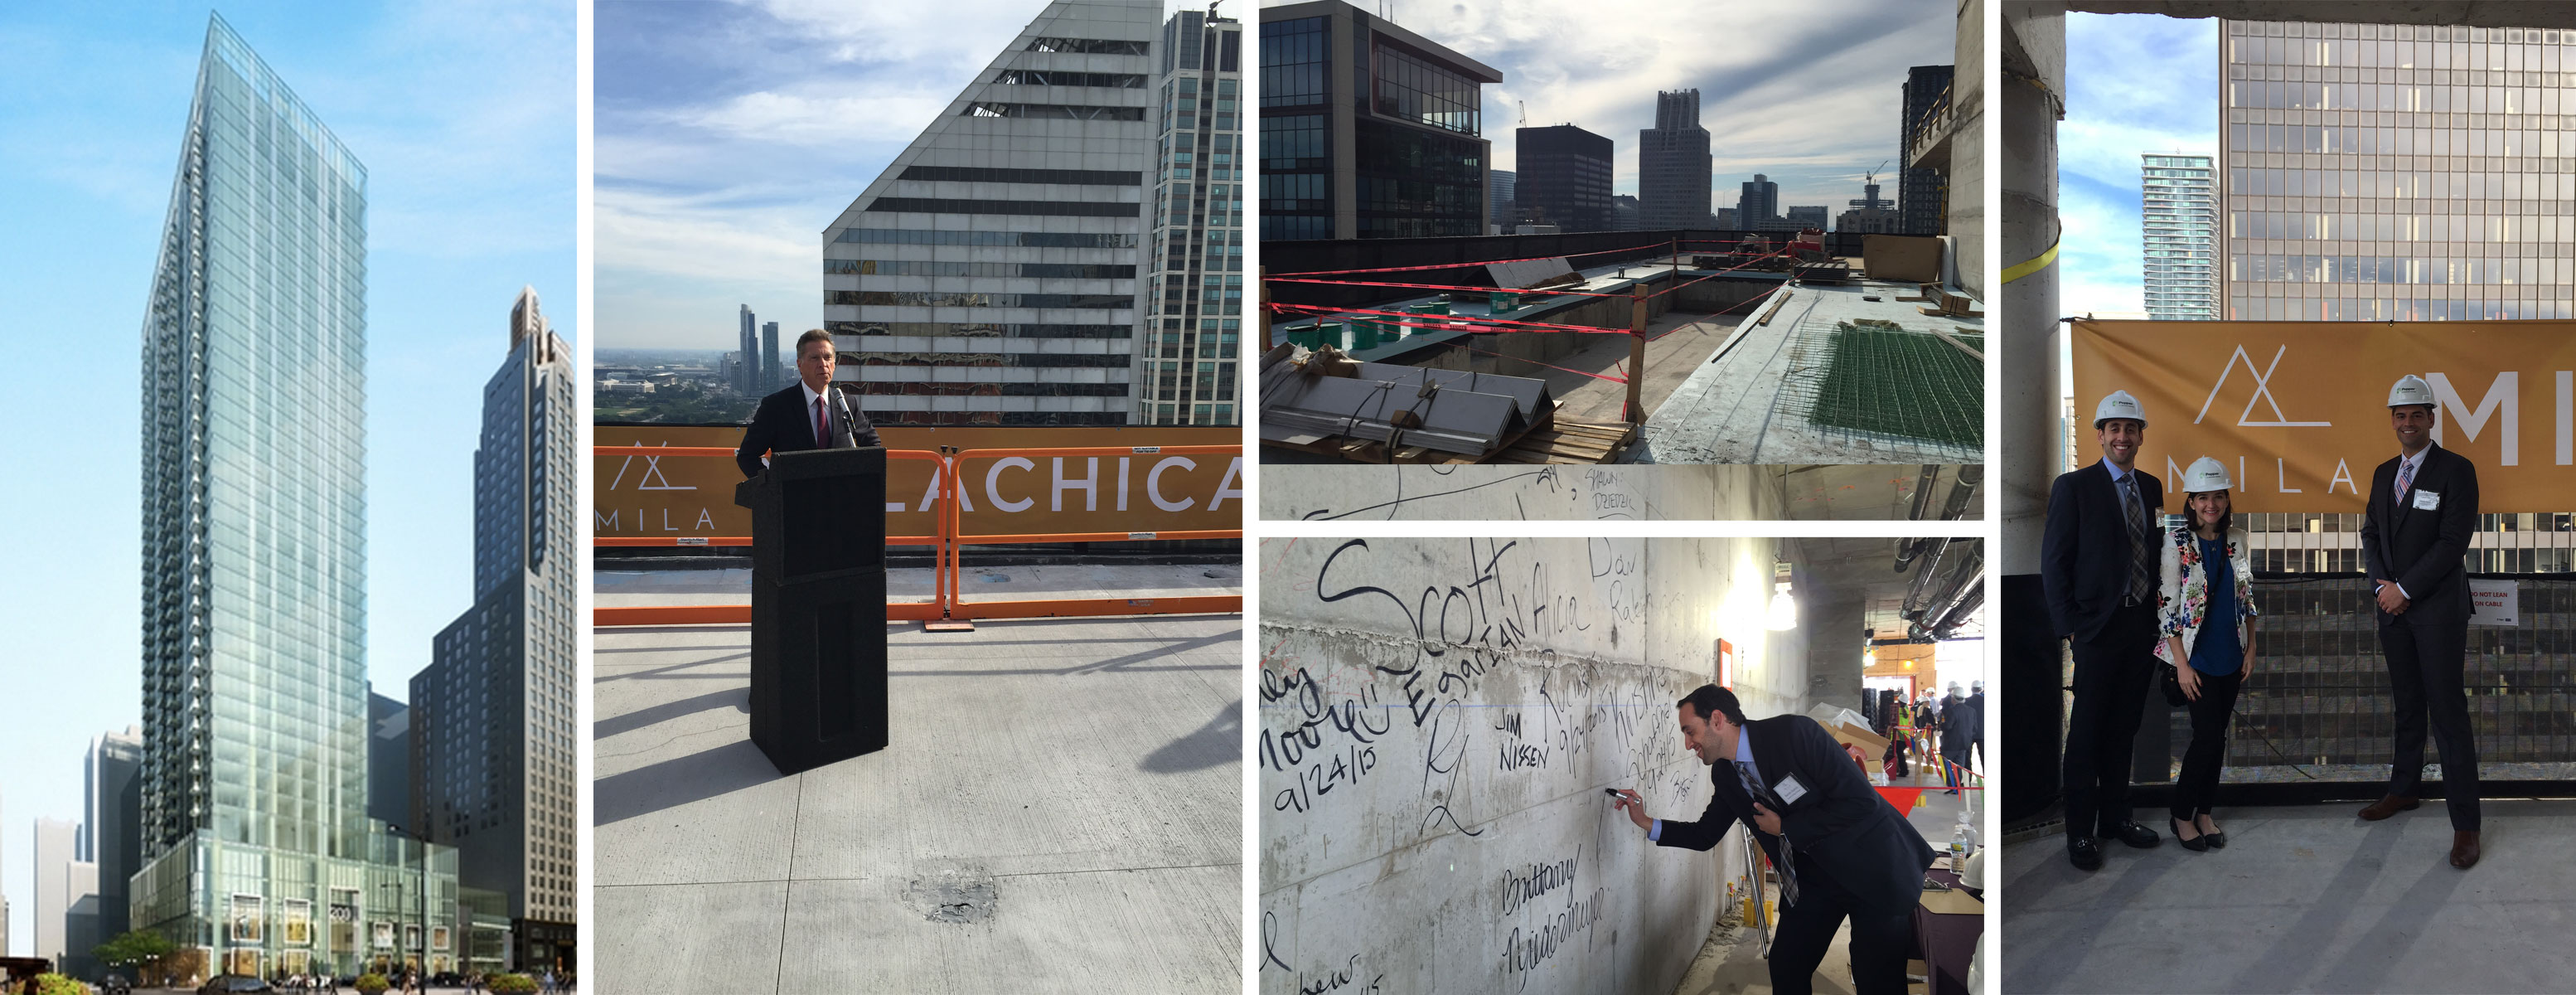 MILA Luxury Apartments Topping Off Party